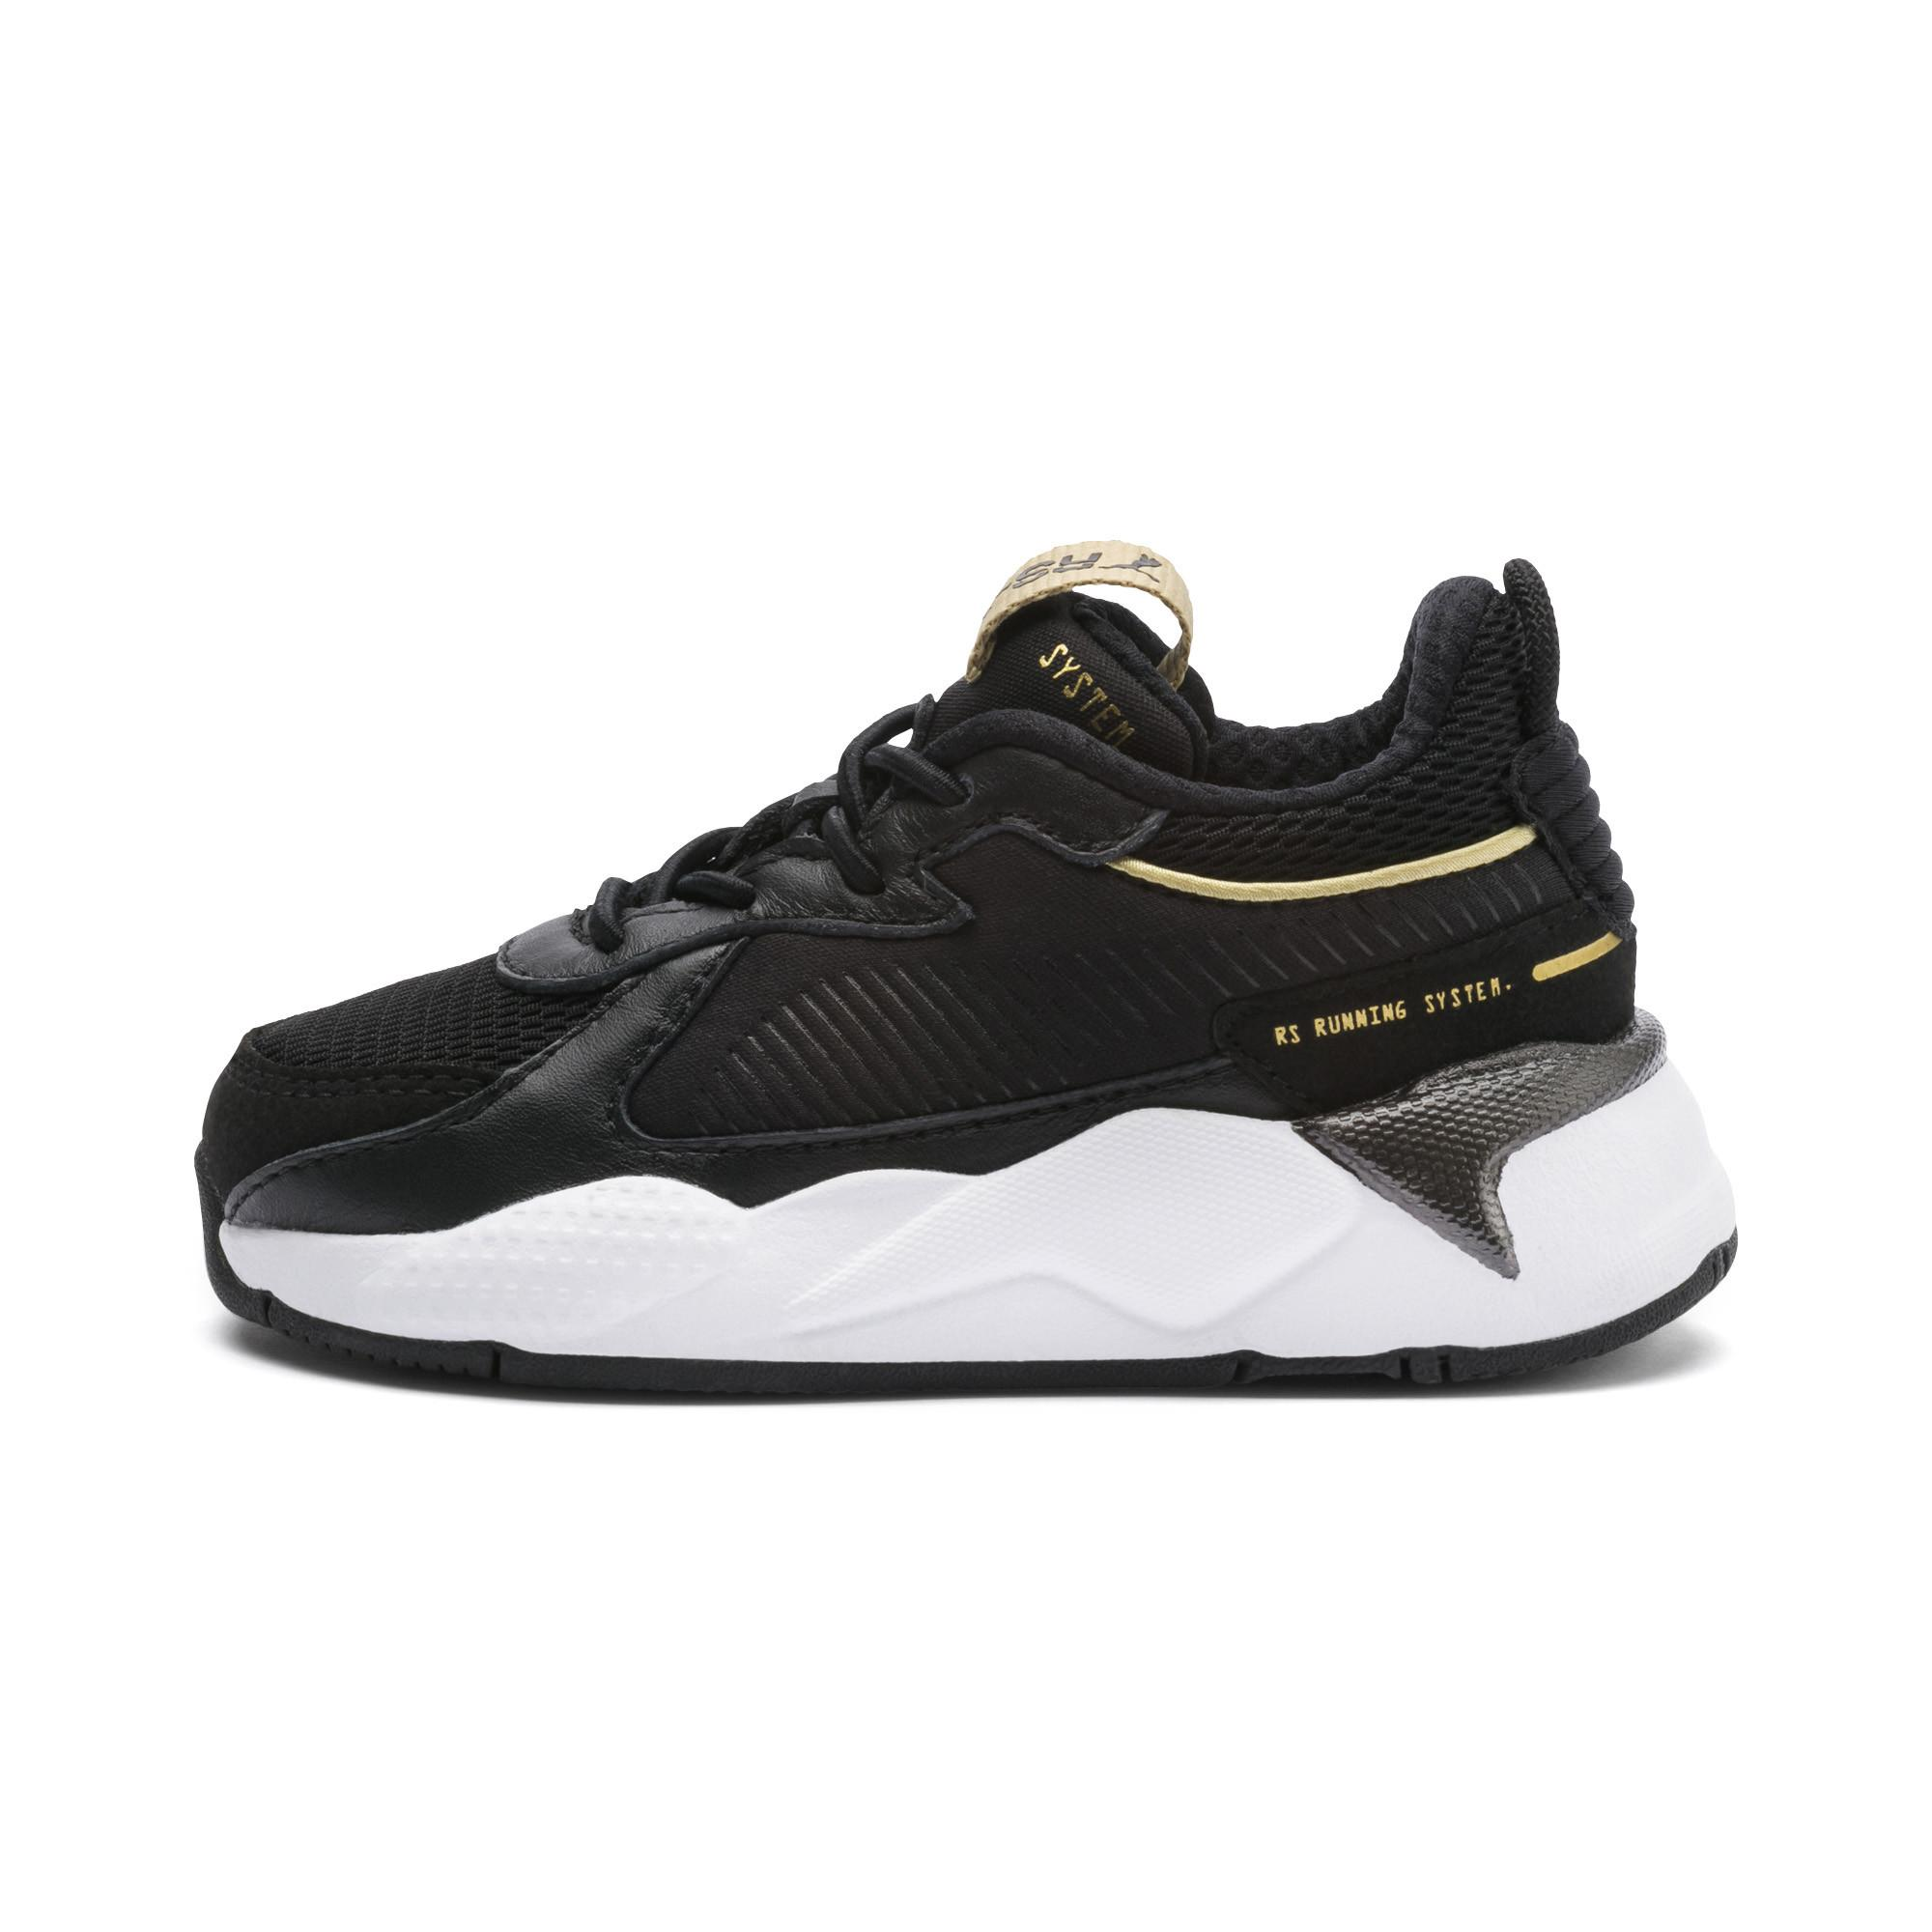 Lyst - PUMA Rs-x Trophy Ac Sneakers Inf in Black for Men - Save 6% fbf6f4845